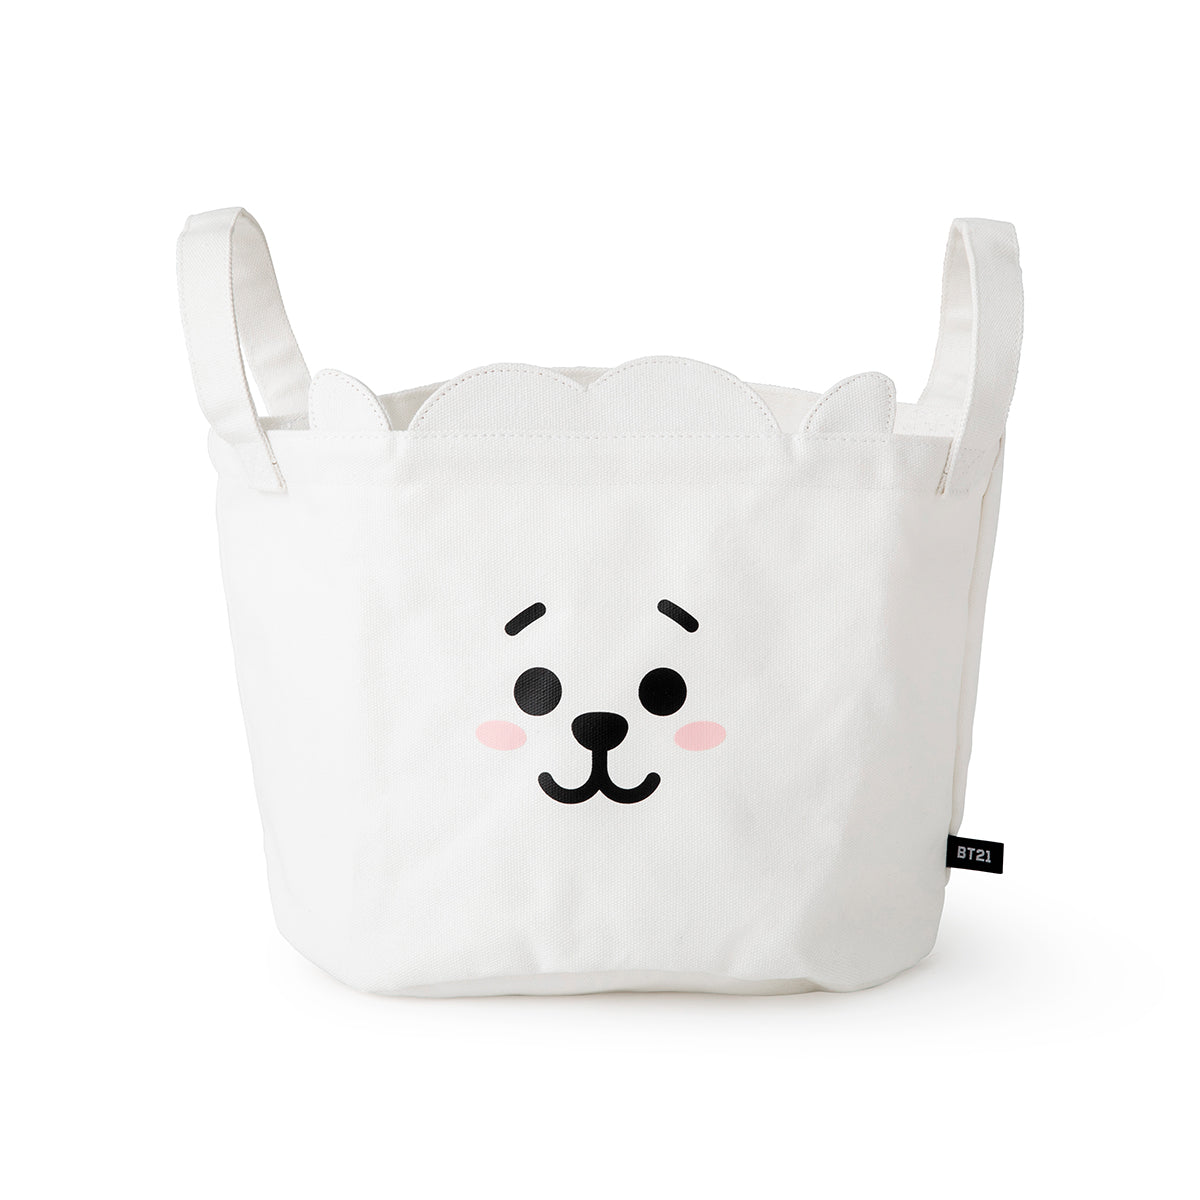 BT21 RJ Storage Bag